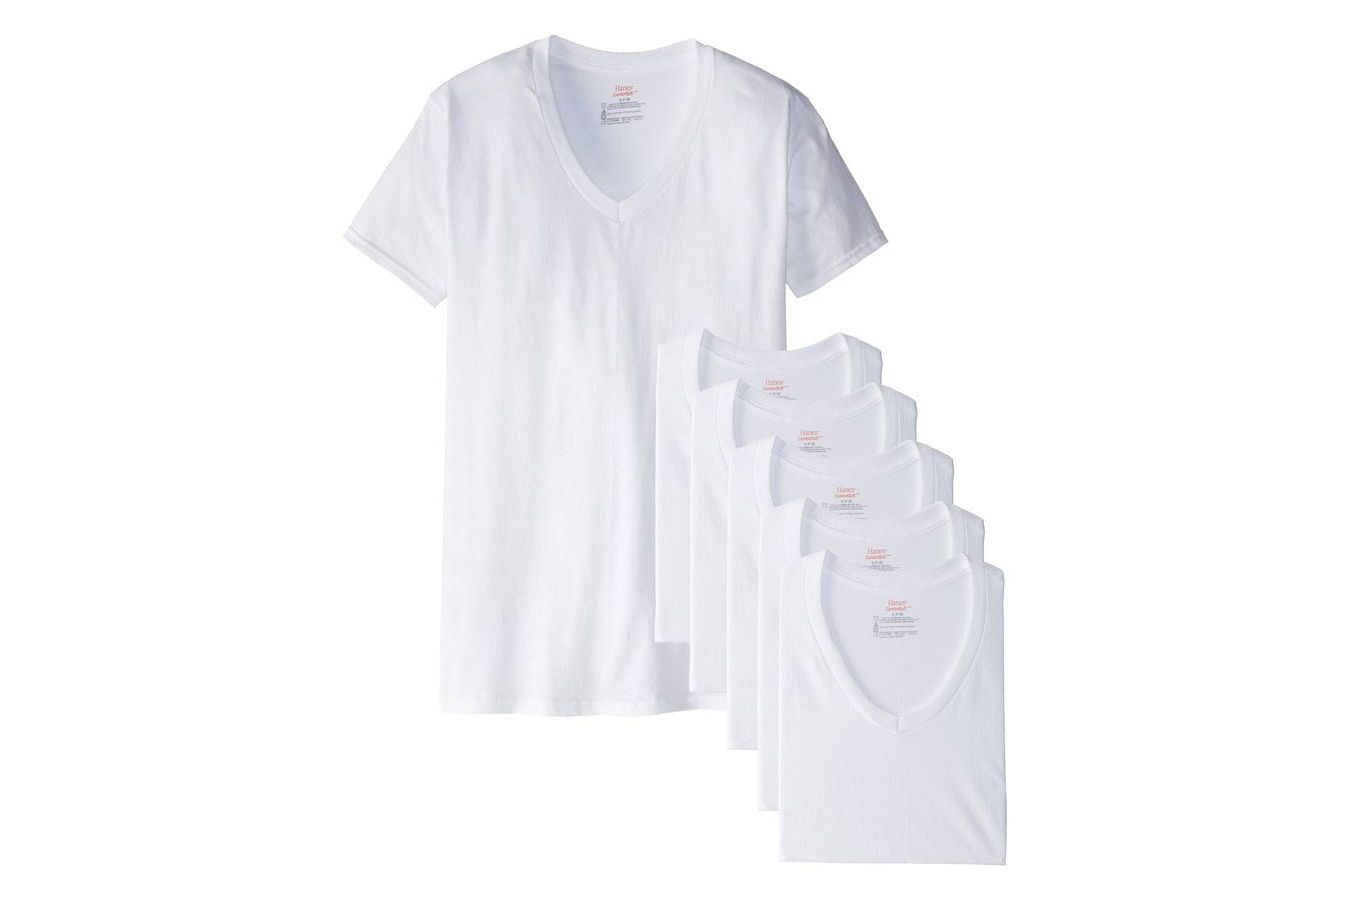 Hanes black t shirts xxl -  The Best White Tee Has Been A Hotly Debated Topic Among My Friends As A Skinny Dude I Ve Been Loyal To The Small Hanes V Neck For Years